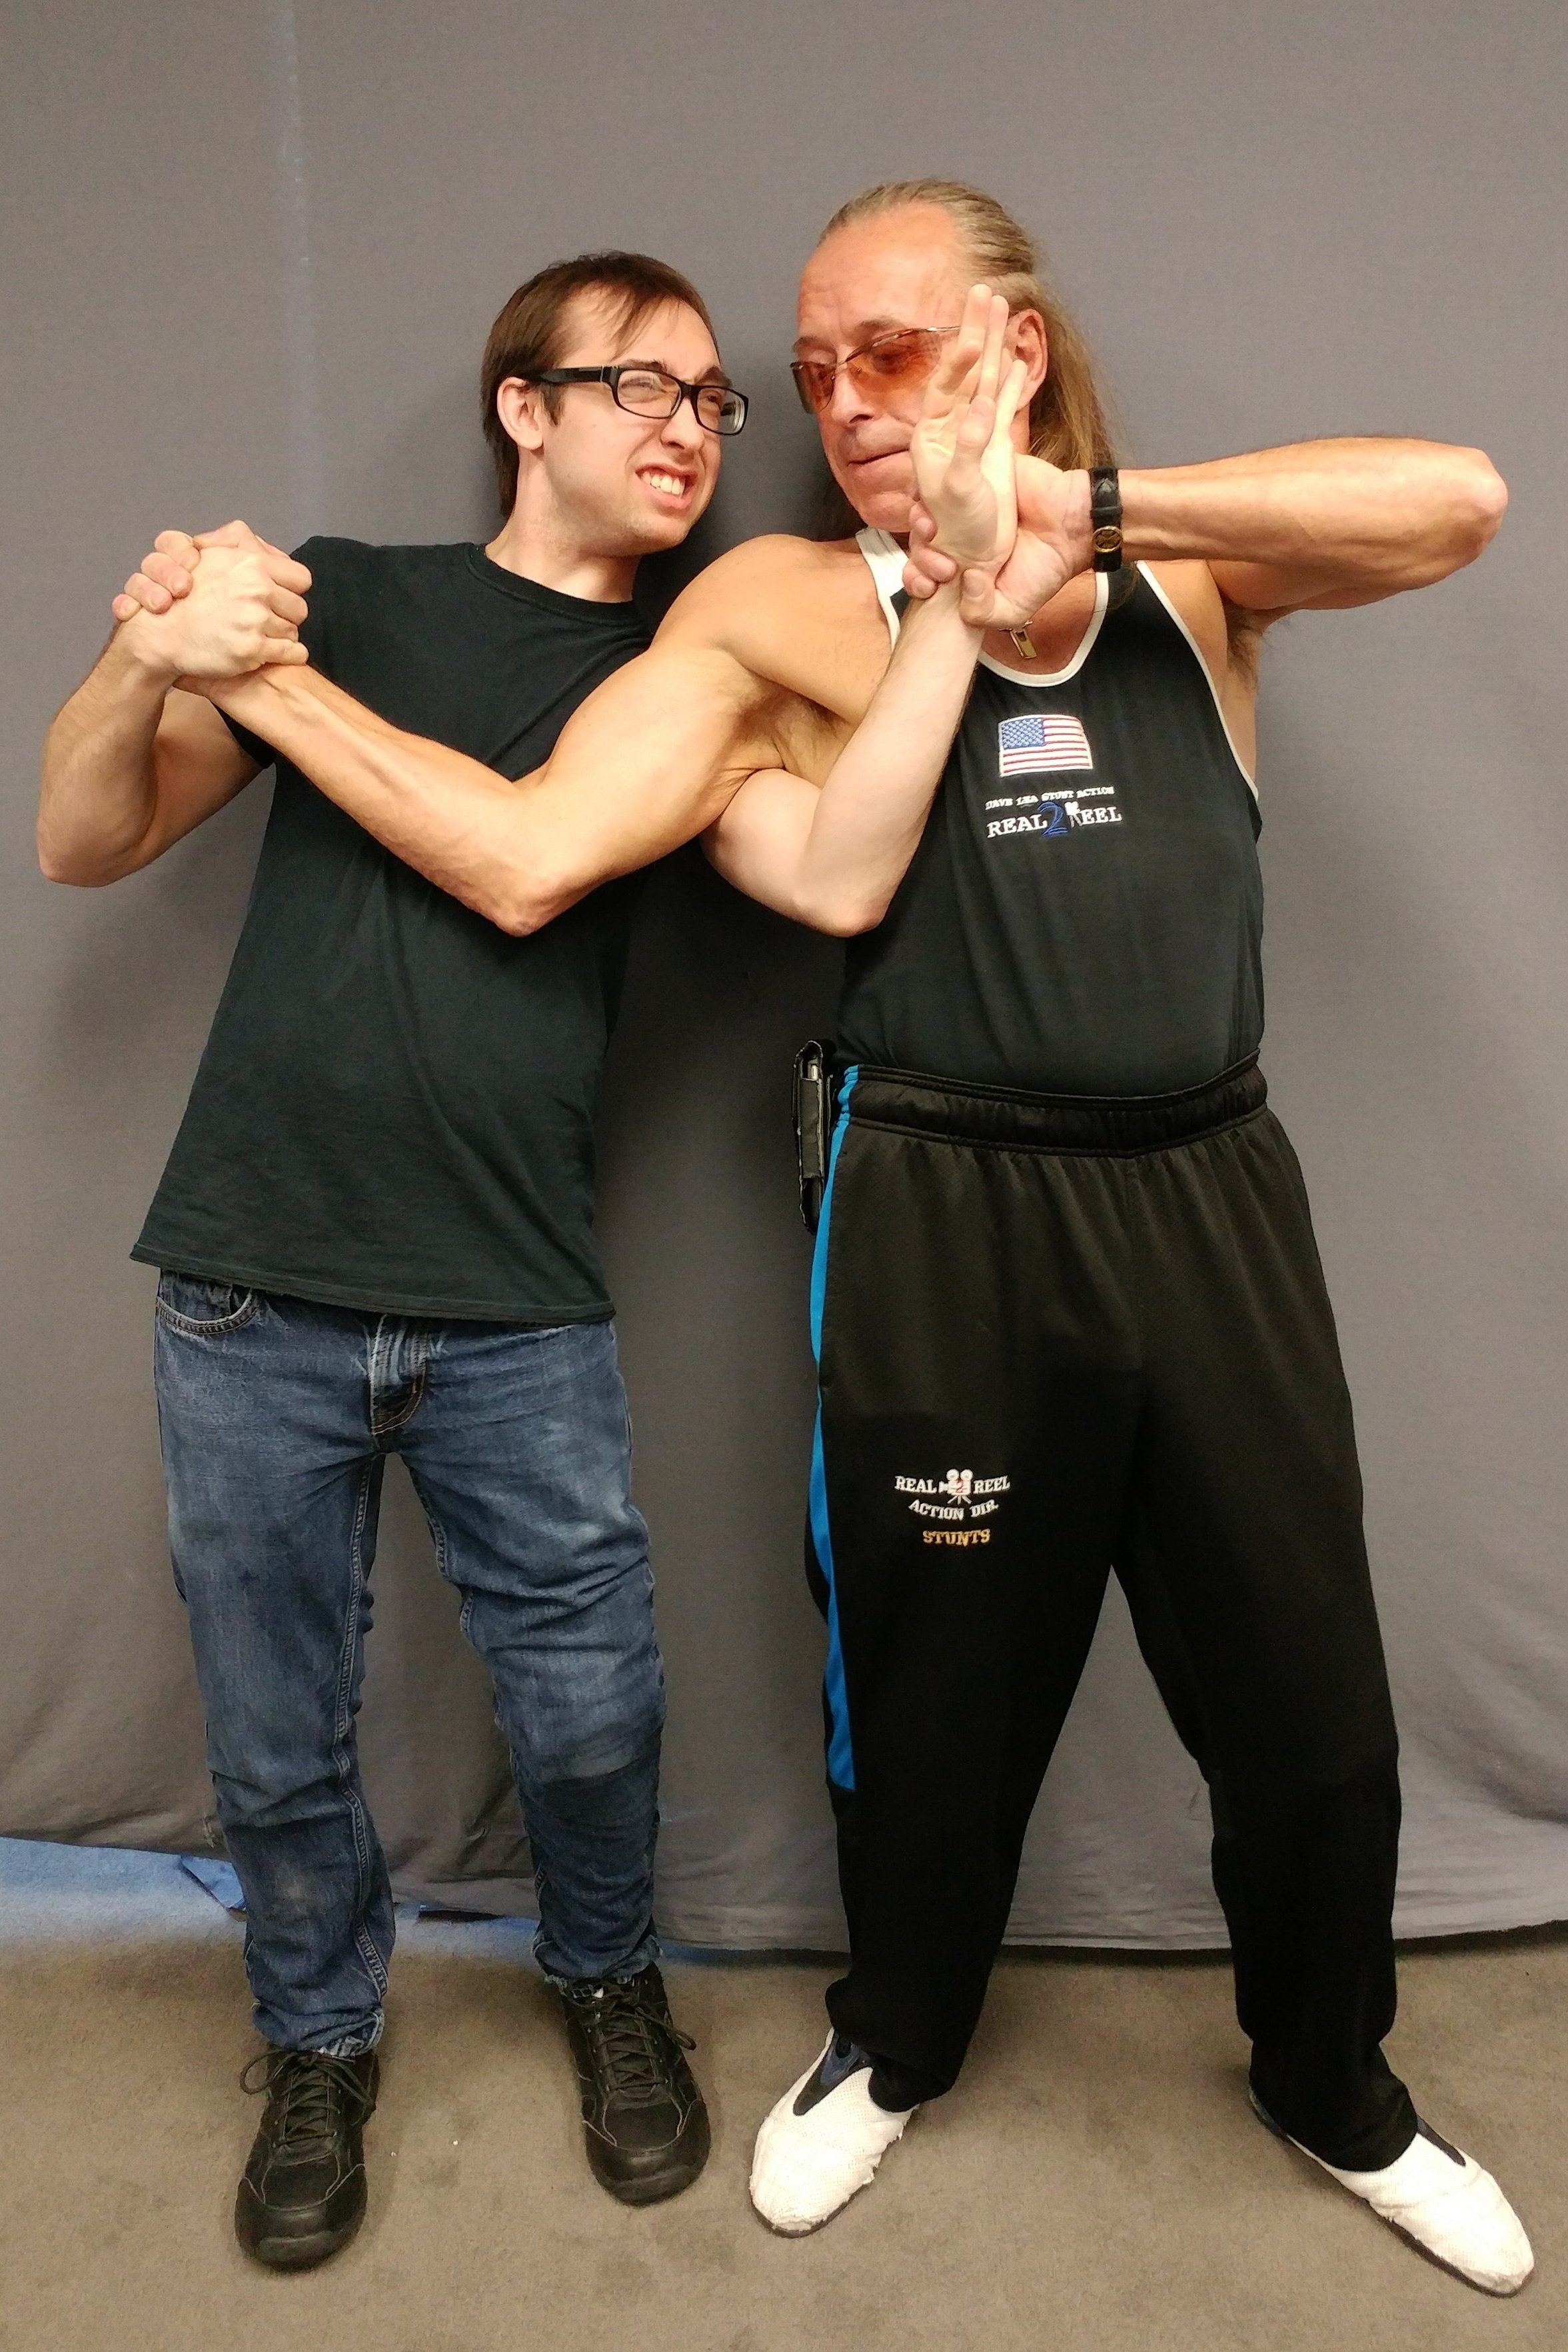 A photo with the stunt legend Dave Lea after attending his basic motion picture fight class.